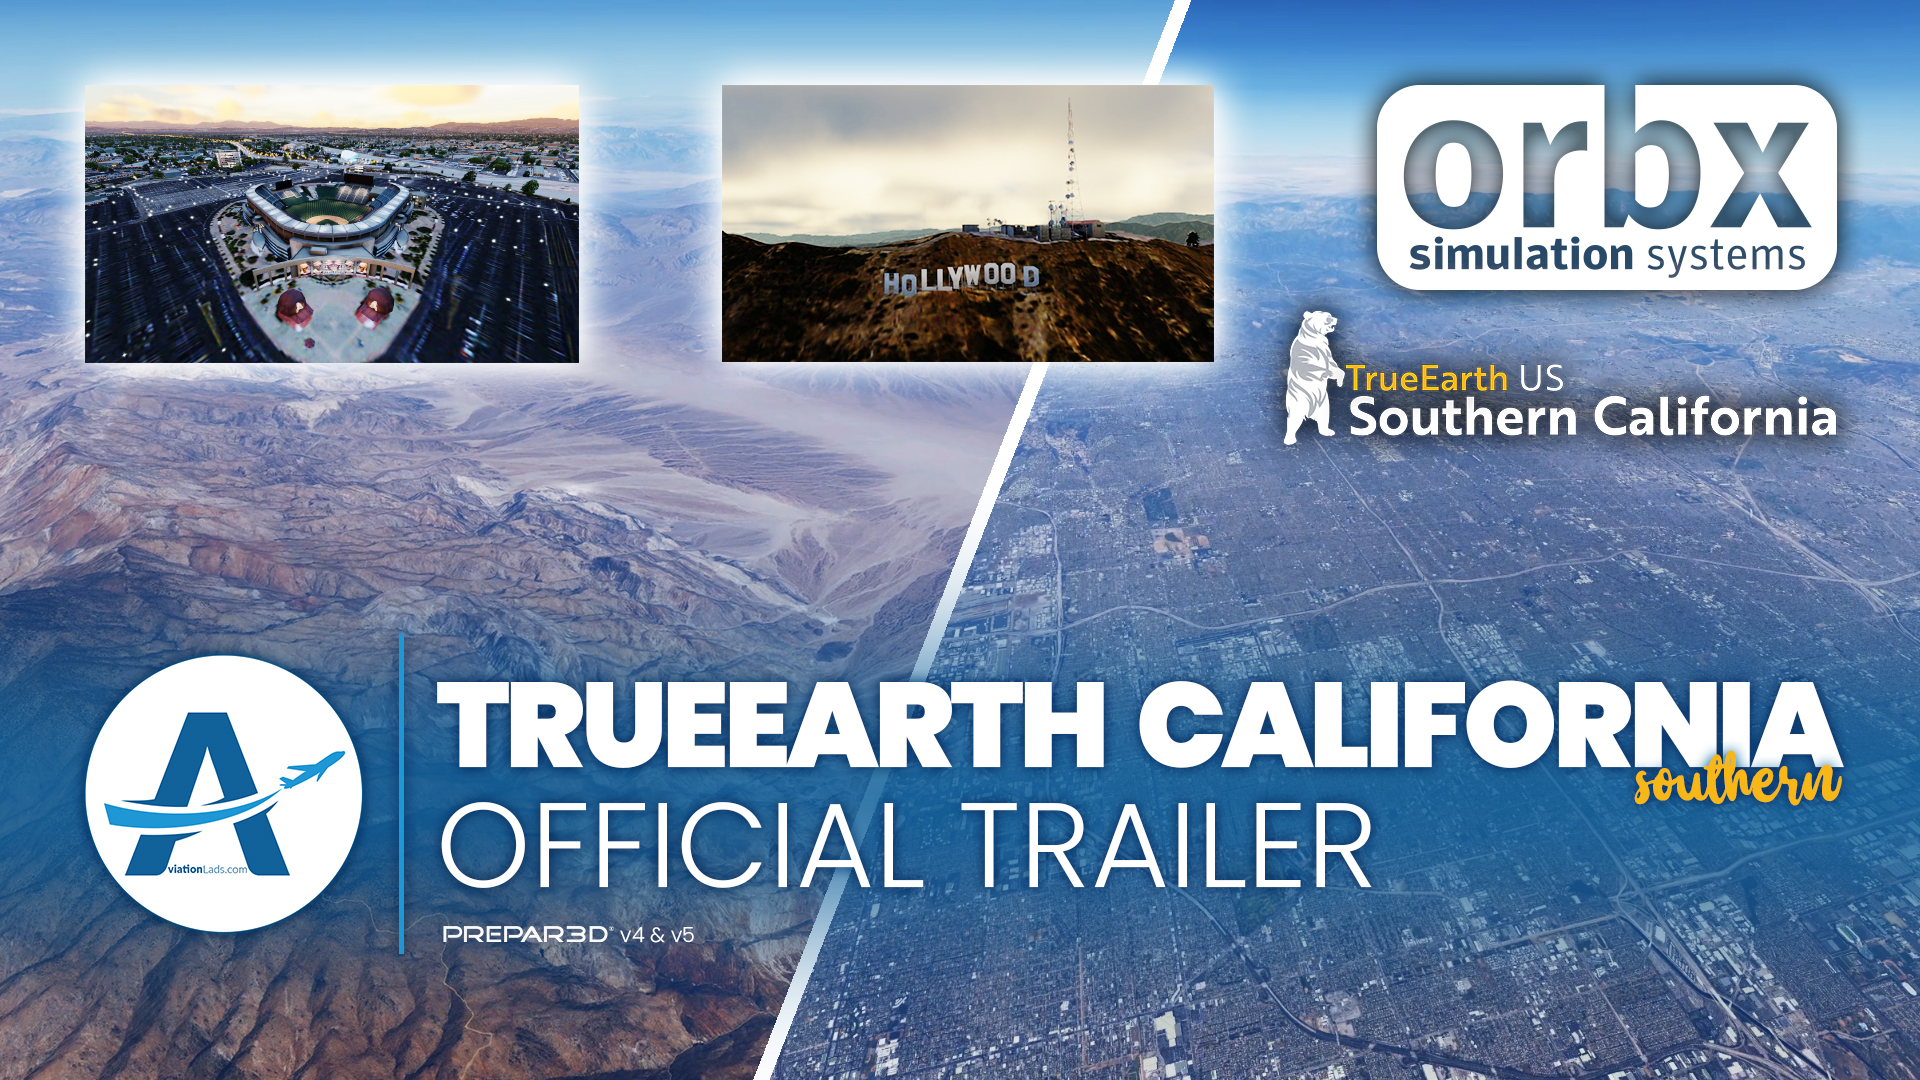 [TRAILER] Orbx – TrueEarth SoCal